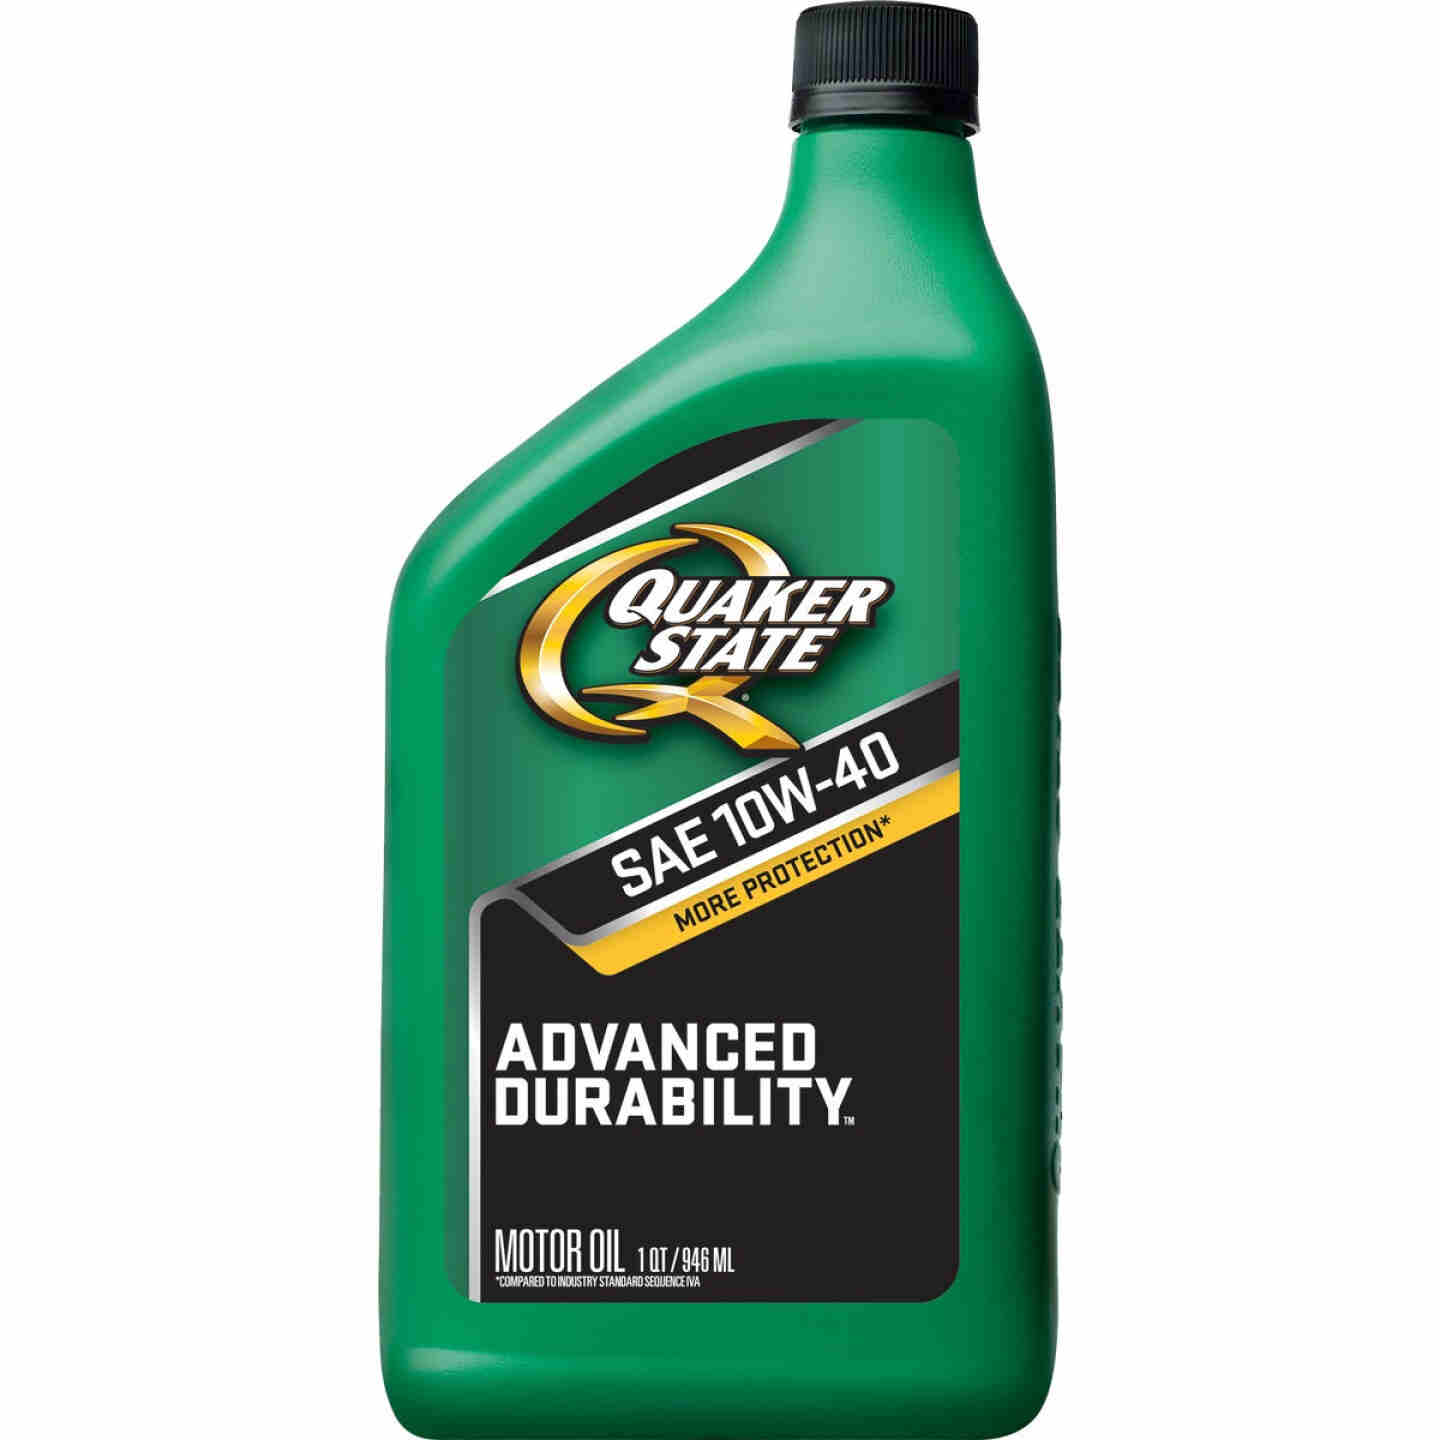 Quaker State Advanced Durability 10W40 Quart Motor Oil Image 1